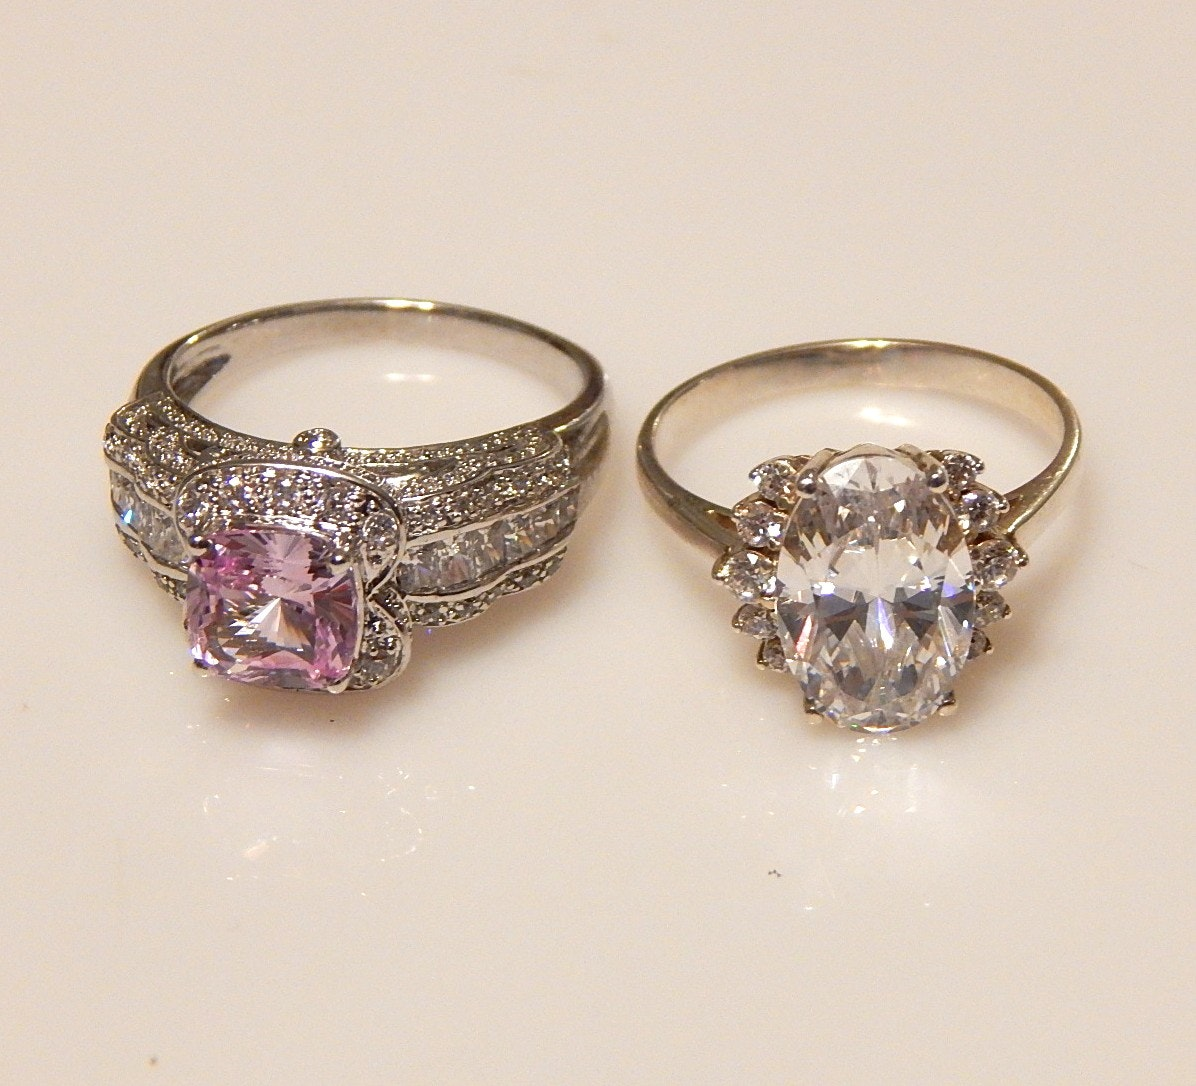 Two Sterling Silver and Cubic Zirconia Rings